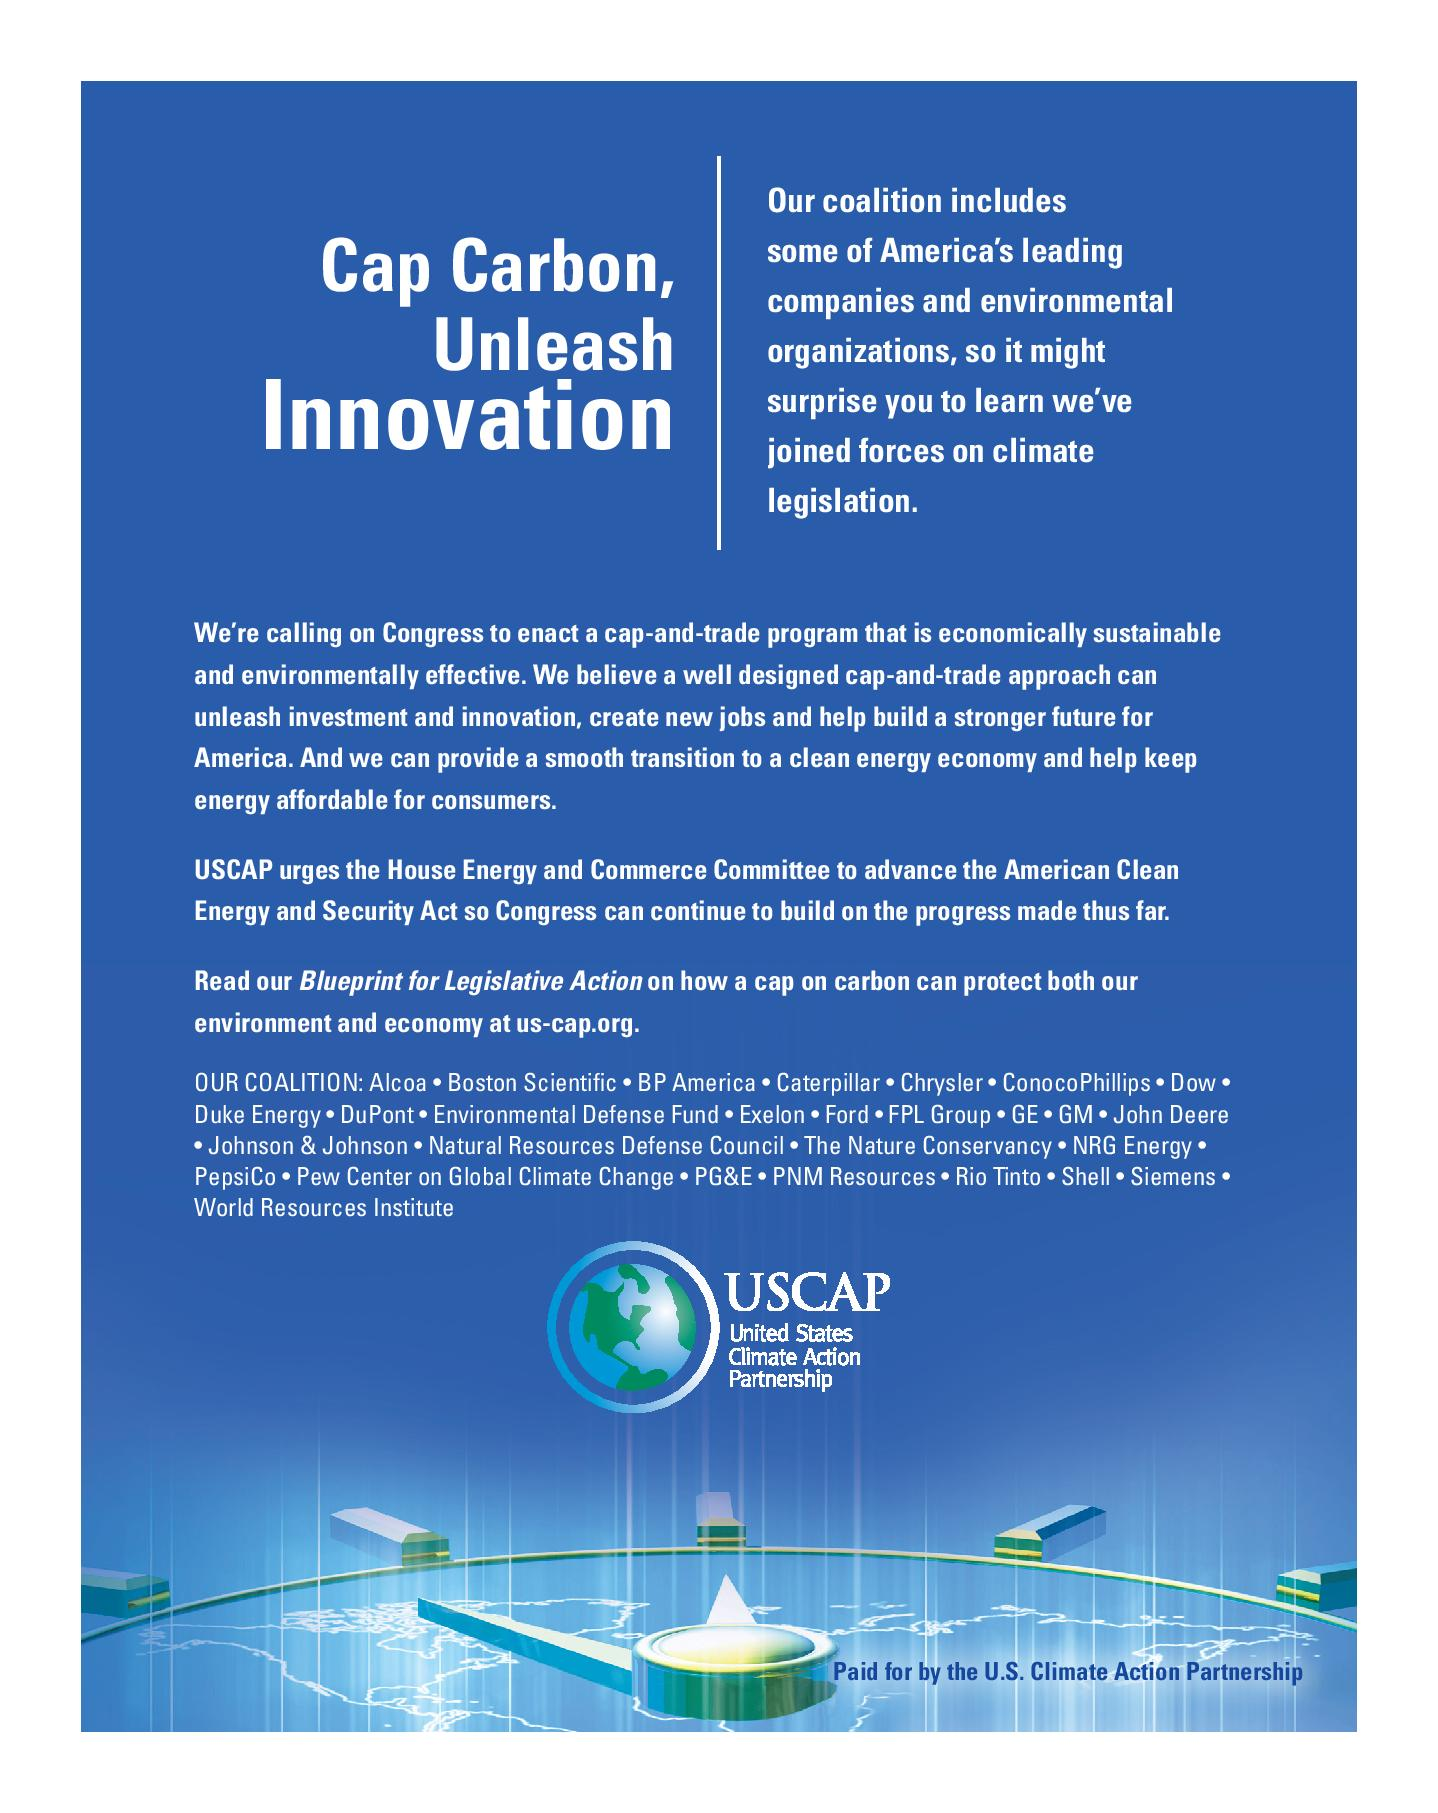 Cap Carbon, Unleash Innovation